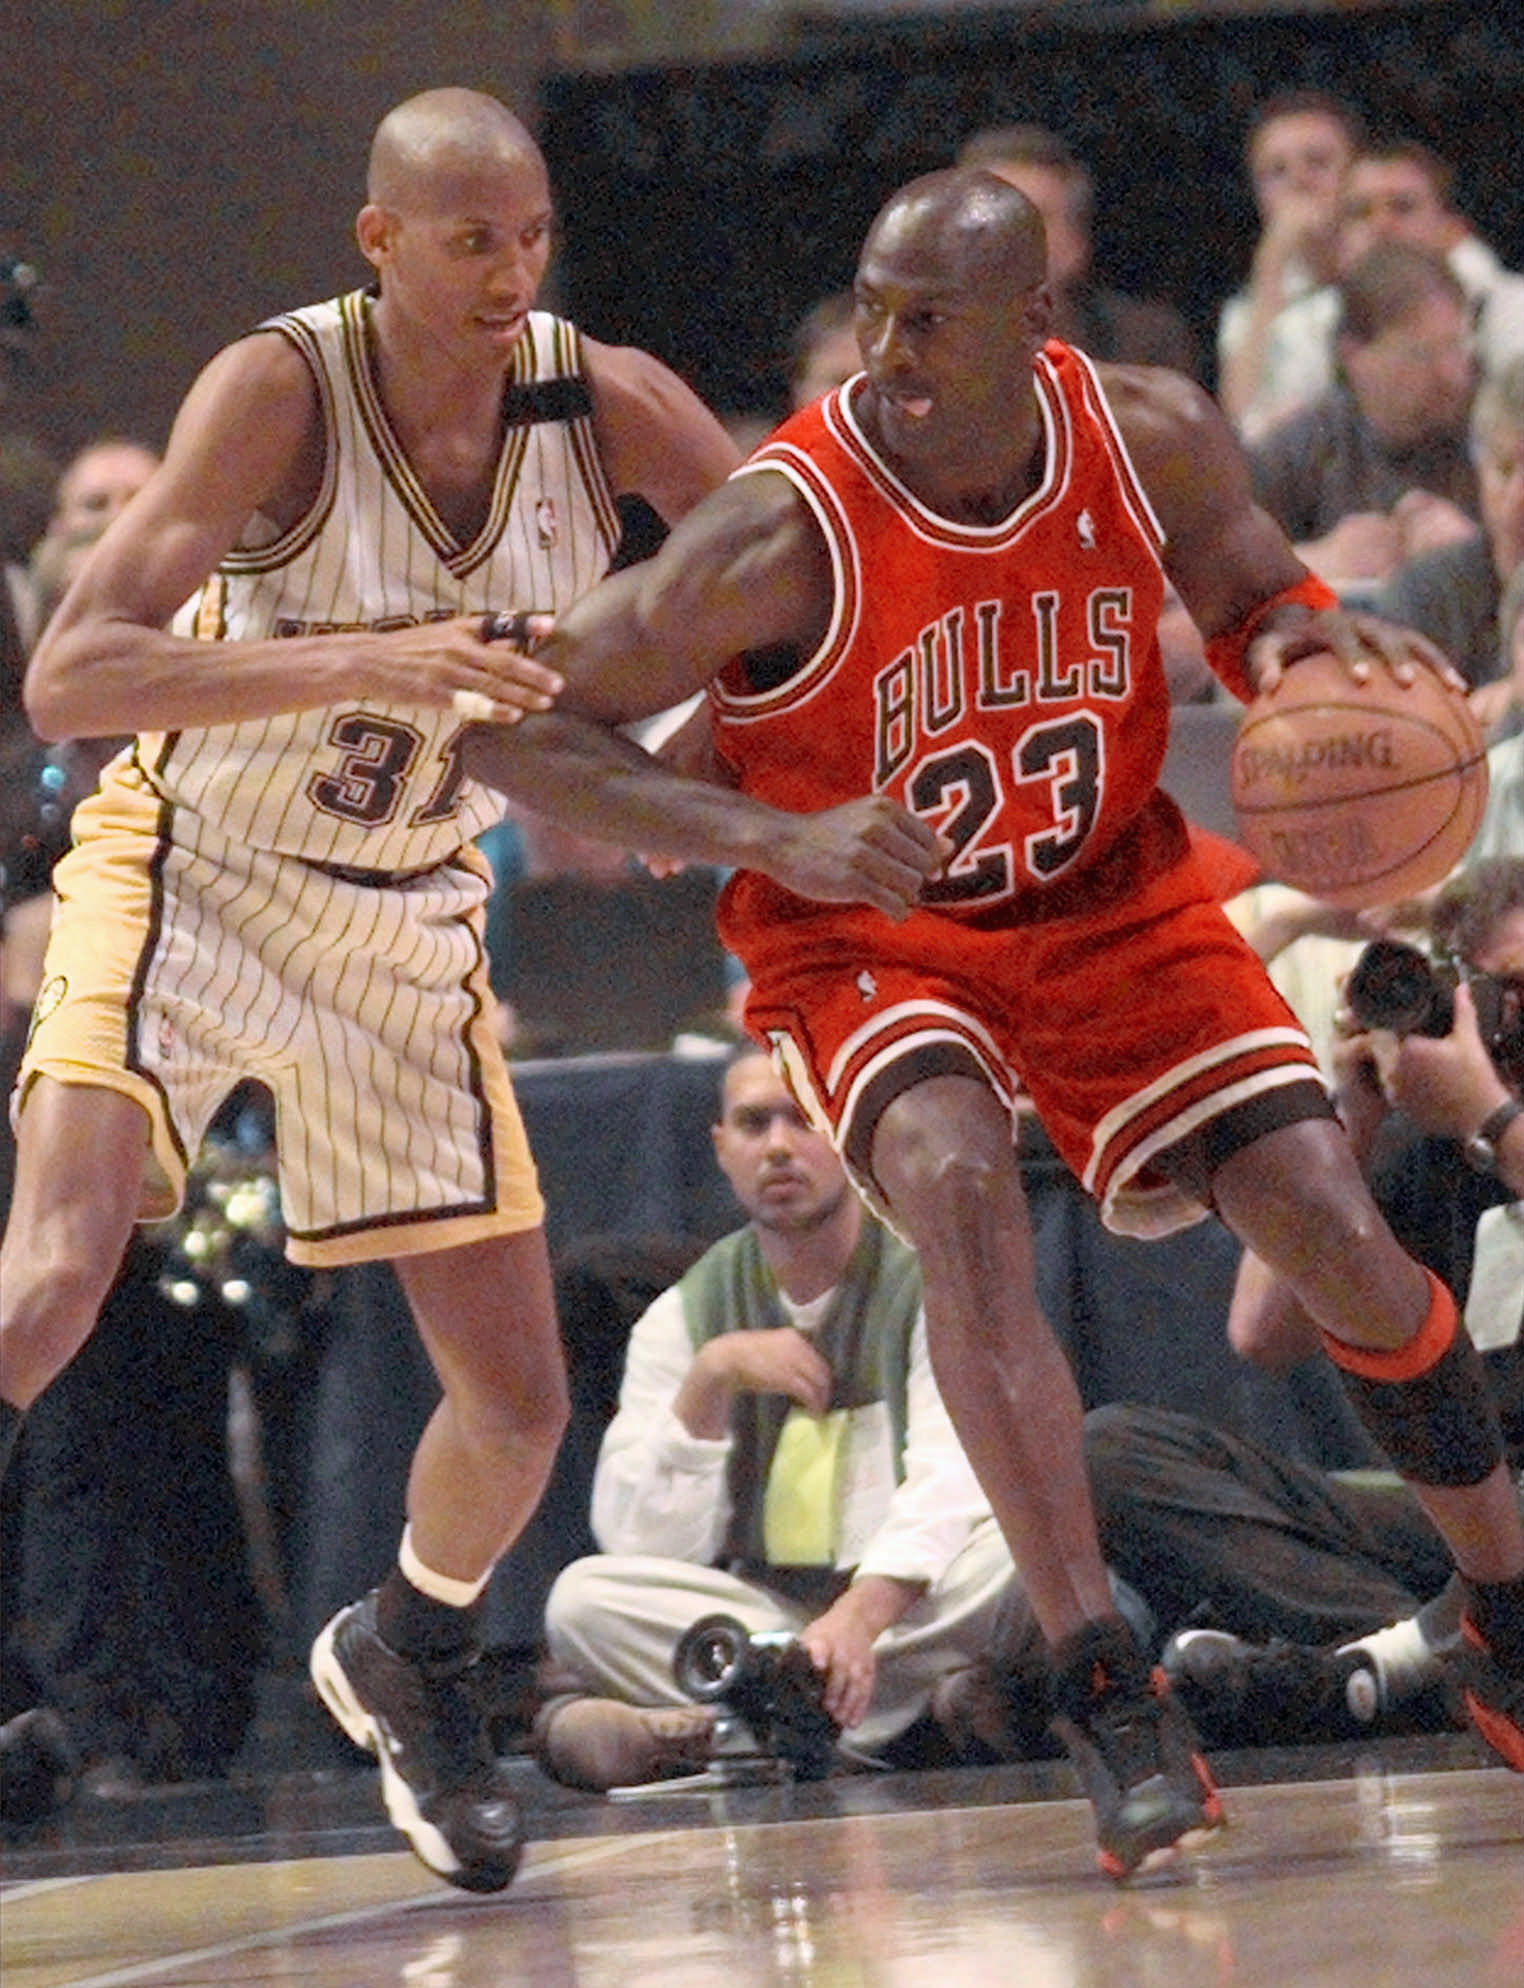 Reggie Miller said he had no desire to team up with Michael Jordan on the Bulls.